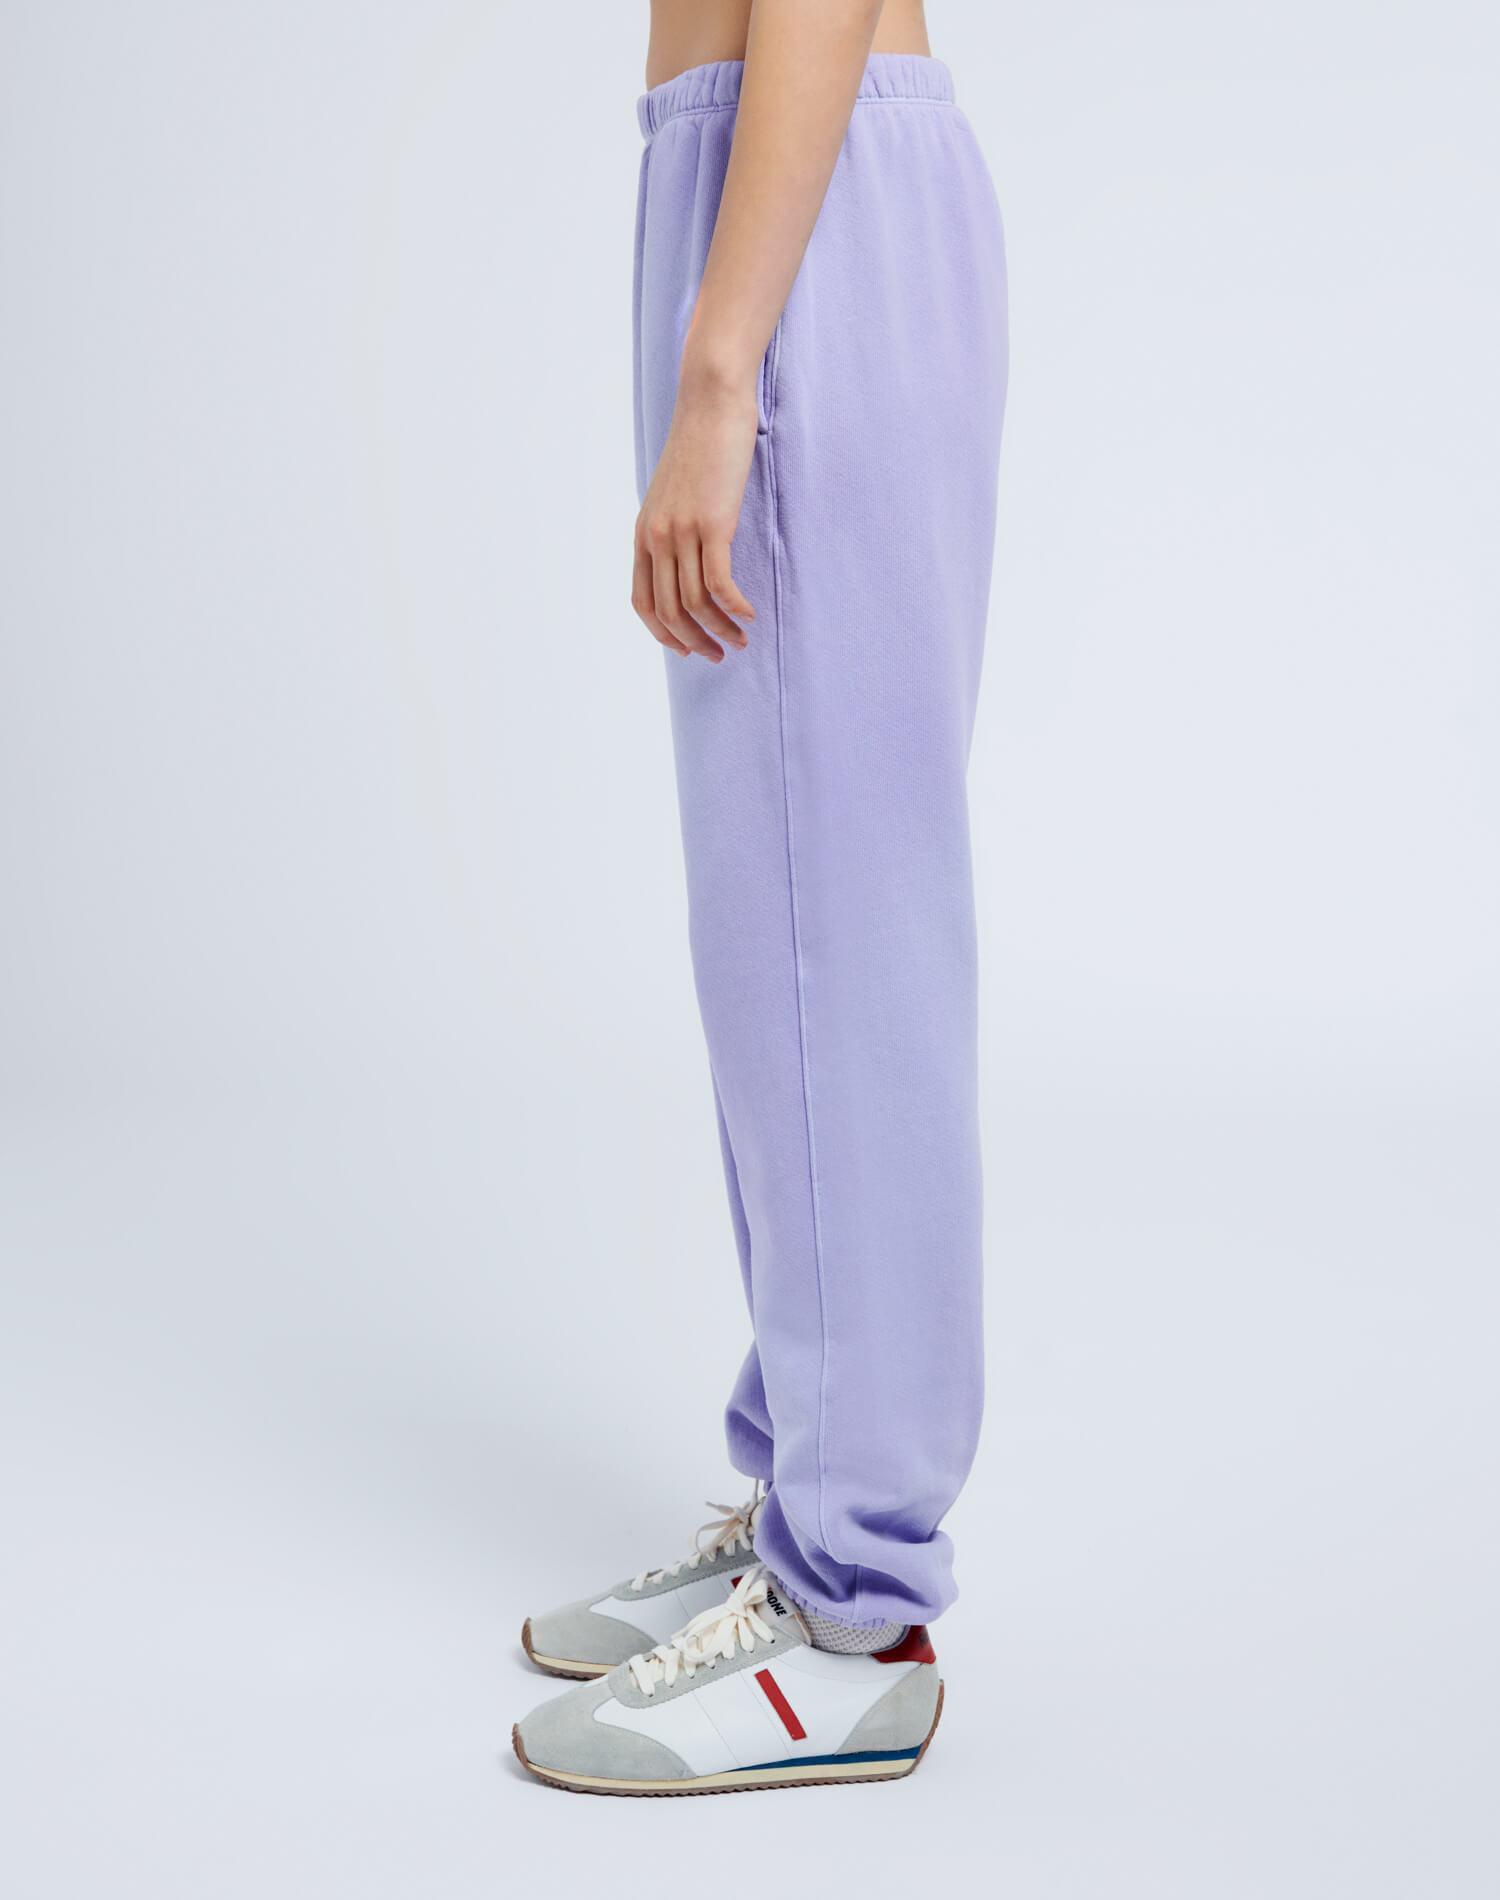 80s Sweatpant - Faded Orchid 2